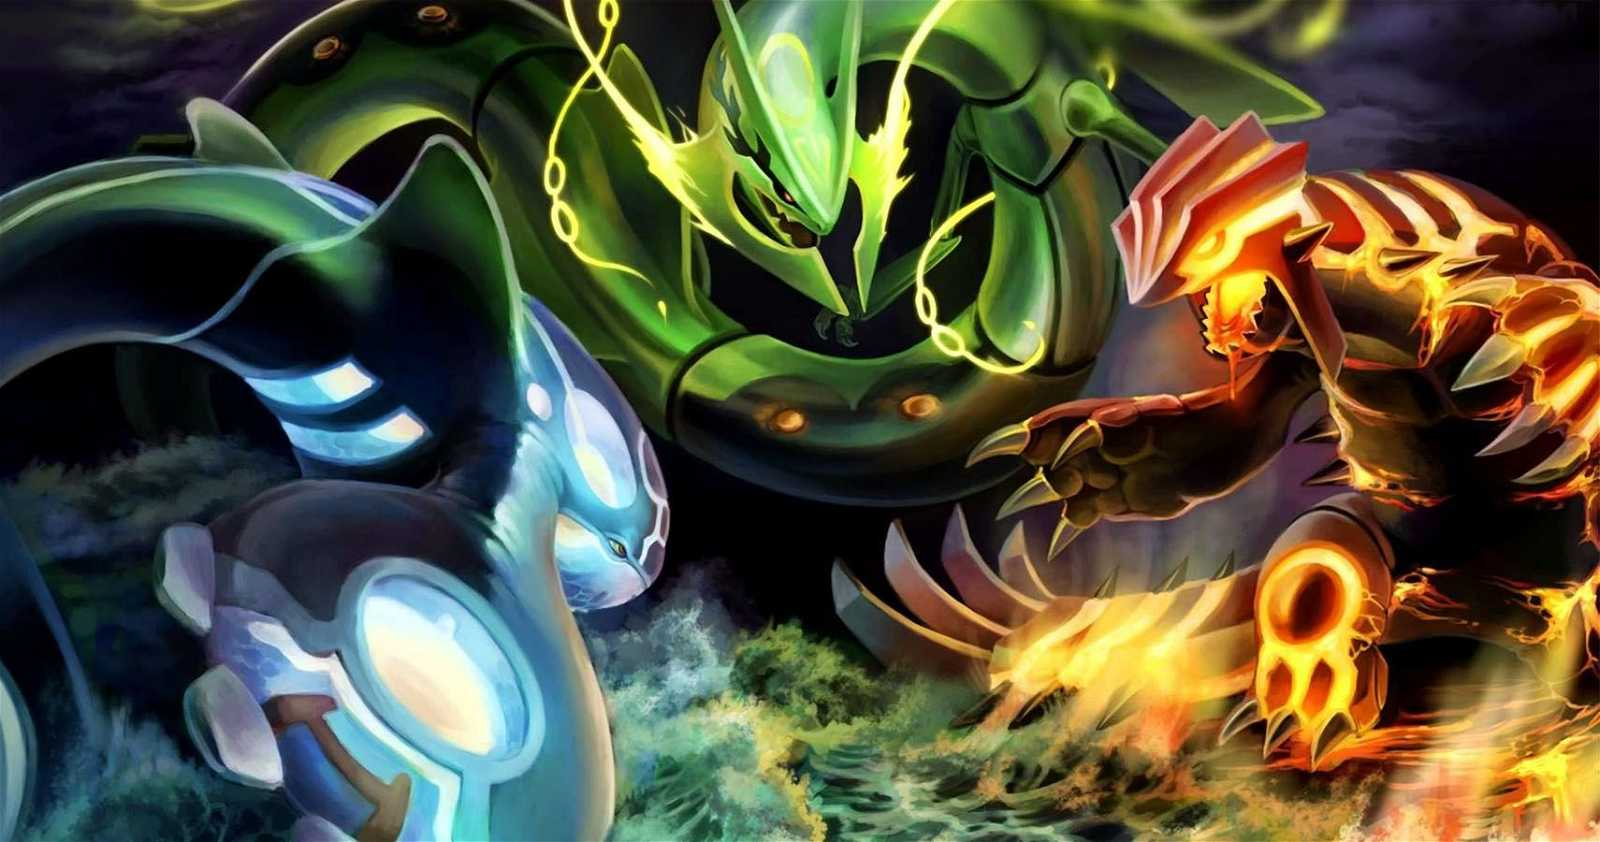 Ranking The Top 15 Legendary Pokémon From Least To Most ...